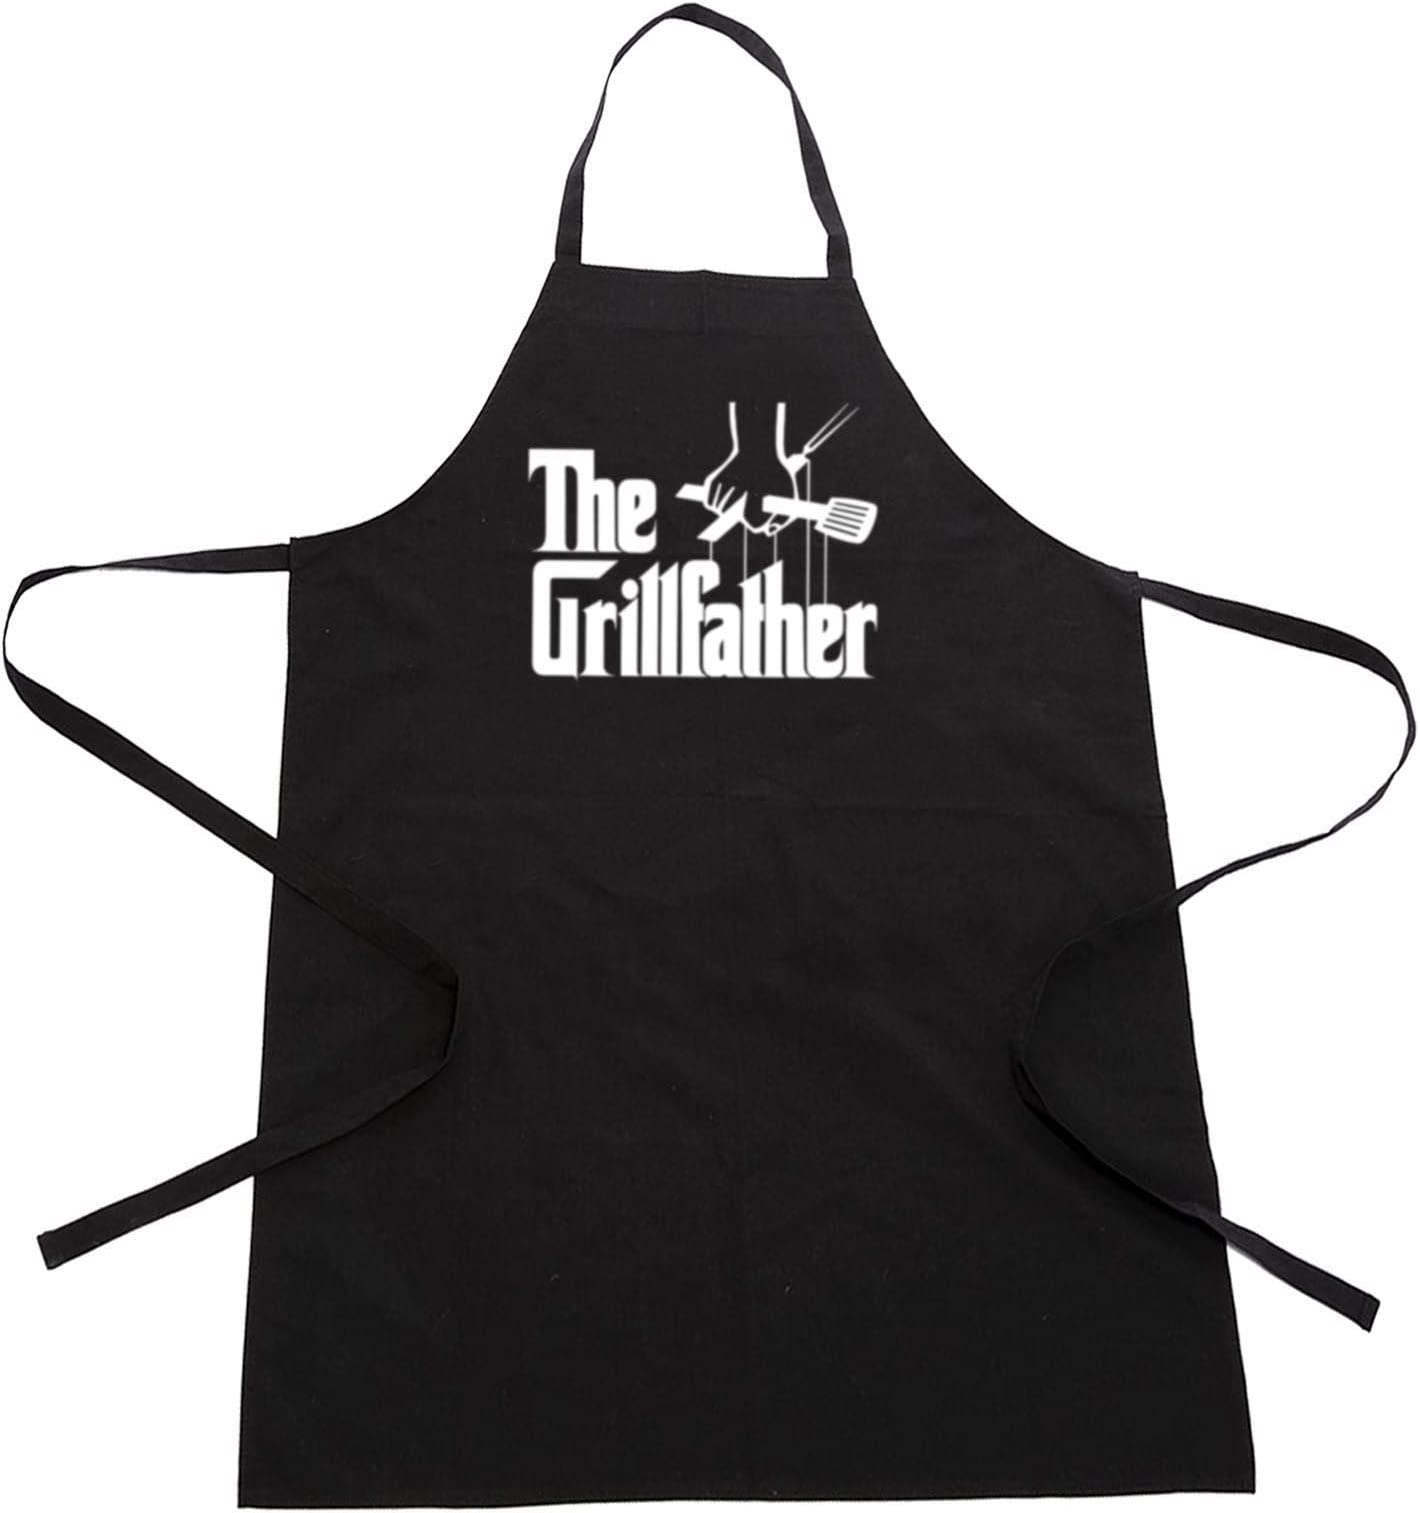 Barbecue Apron Barbecue Apron Old Miss Men/'s Collegiate,Professional Sports Team Grilling,Playoff Father/'s Day Apron,